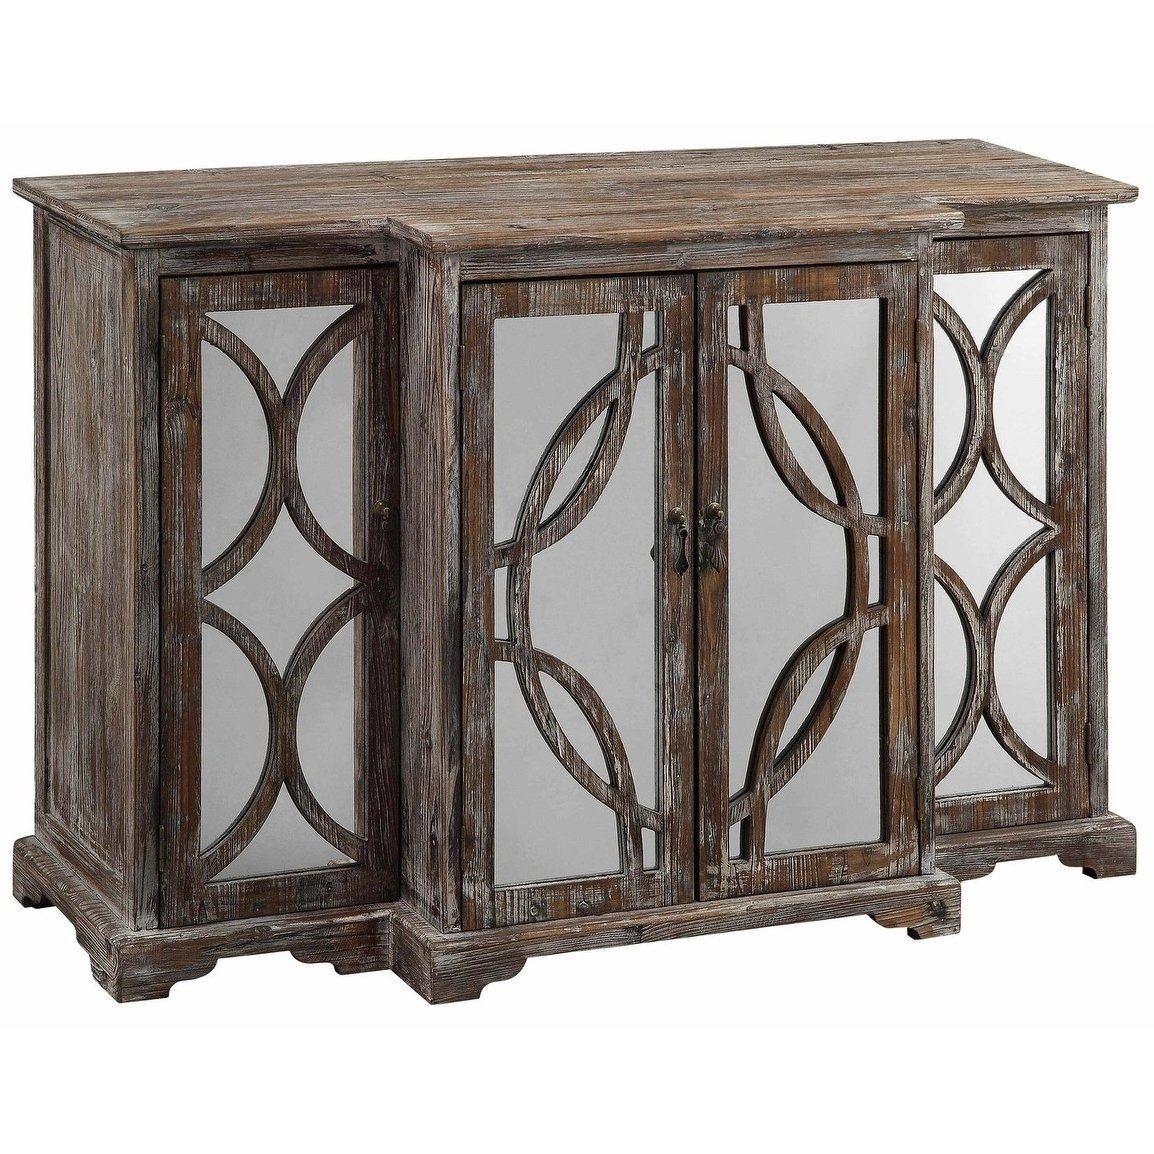 Shop Galloway Dark Brown Rustic Wood And Mirror 4-Door Sideboard with Aged Mirrored 4 Door Sideboards (Image 27 of 30)